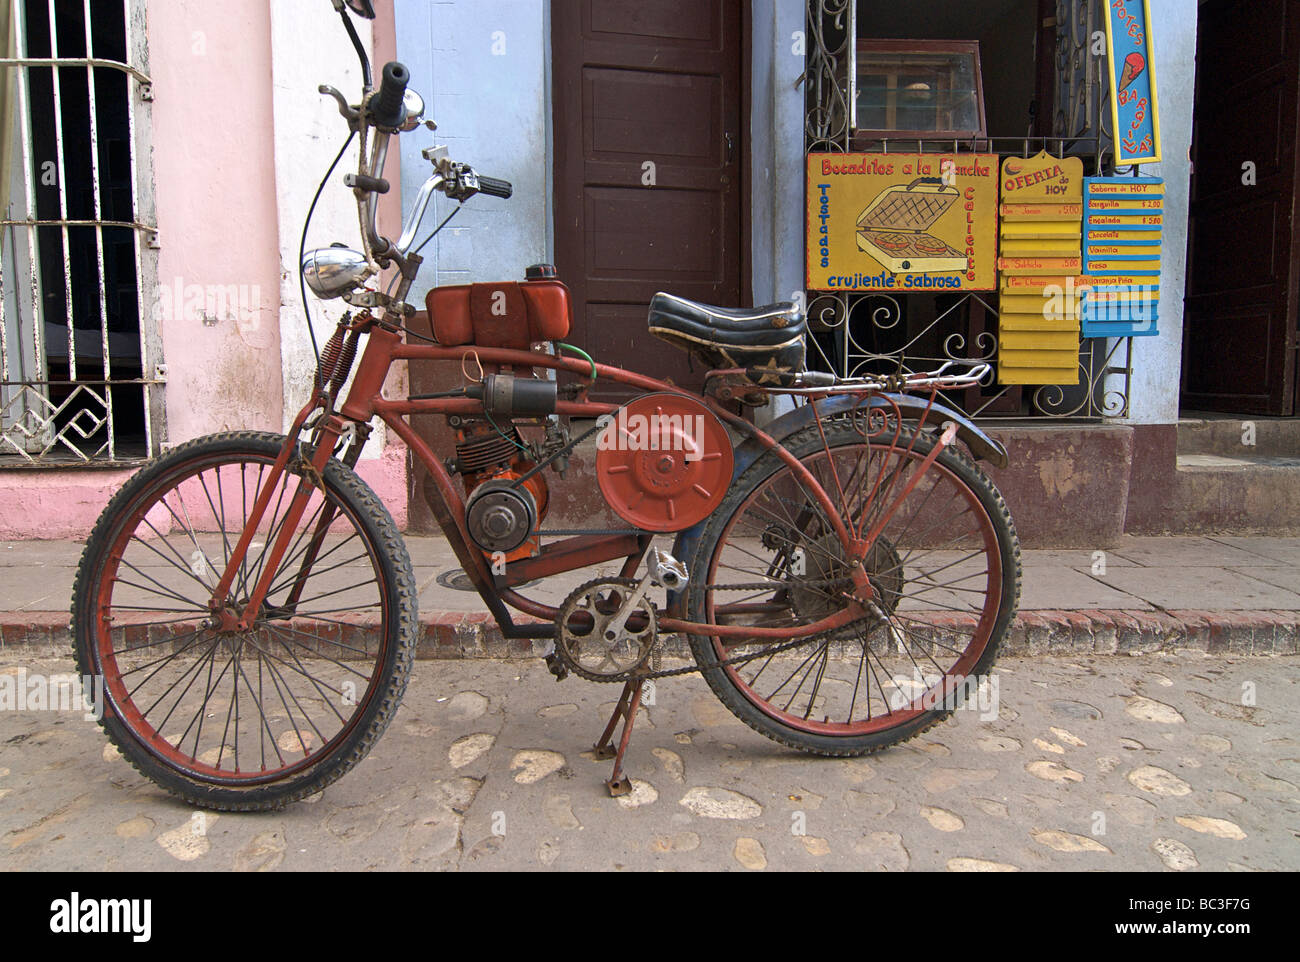 Motorised Bicycle Trinidad Cuba Stock Photo 24664068